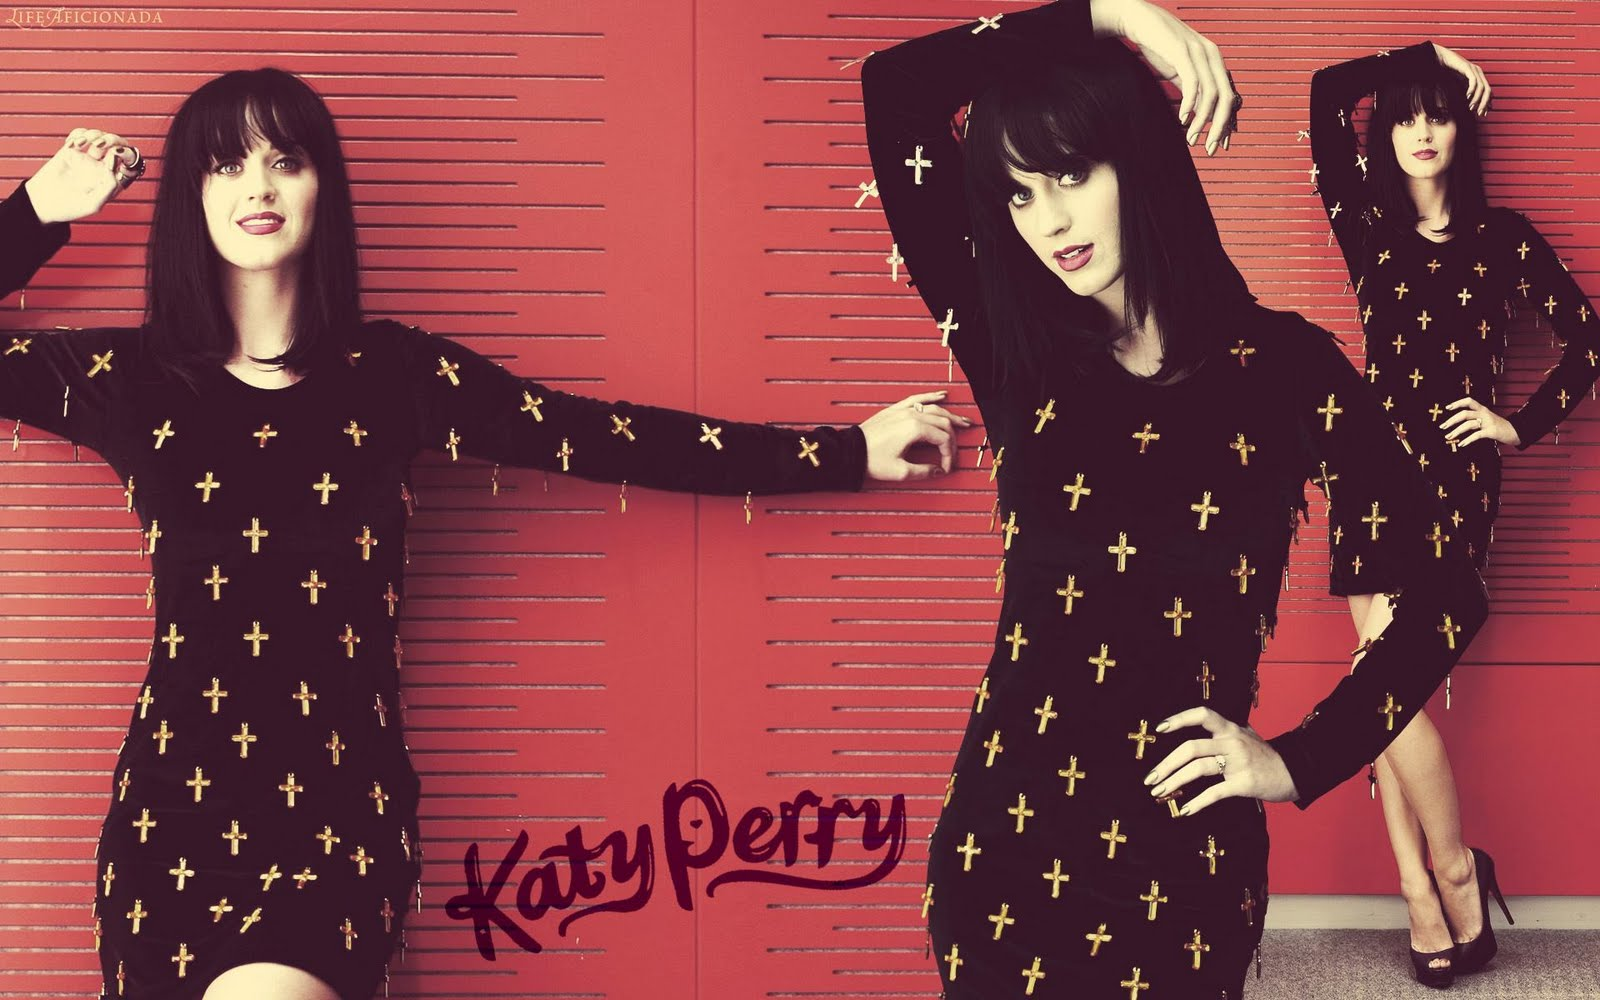 http://1.bp.blogspot.com/-9-OKSS1_cqs/TvRXX88TdbI/AAAAAAAAL4I/bbeBGgQa-hY/s1600/ketty_perry_tattoo_hd_wallpapers_black_dress.jpg